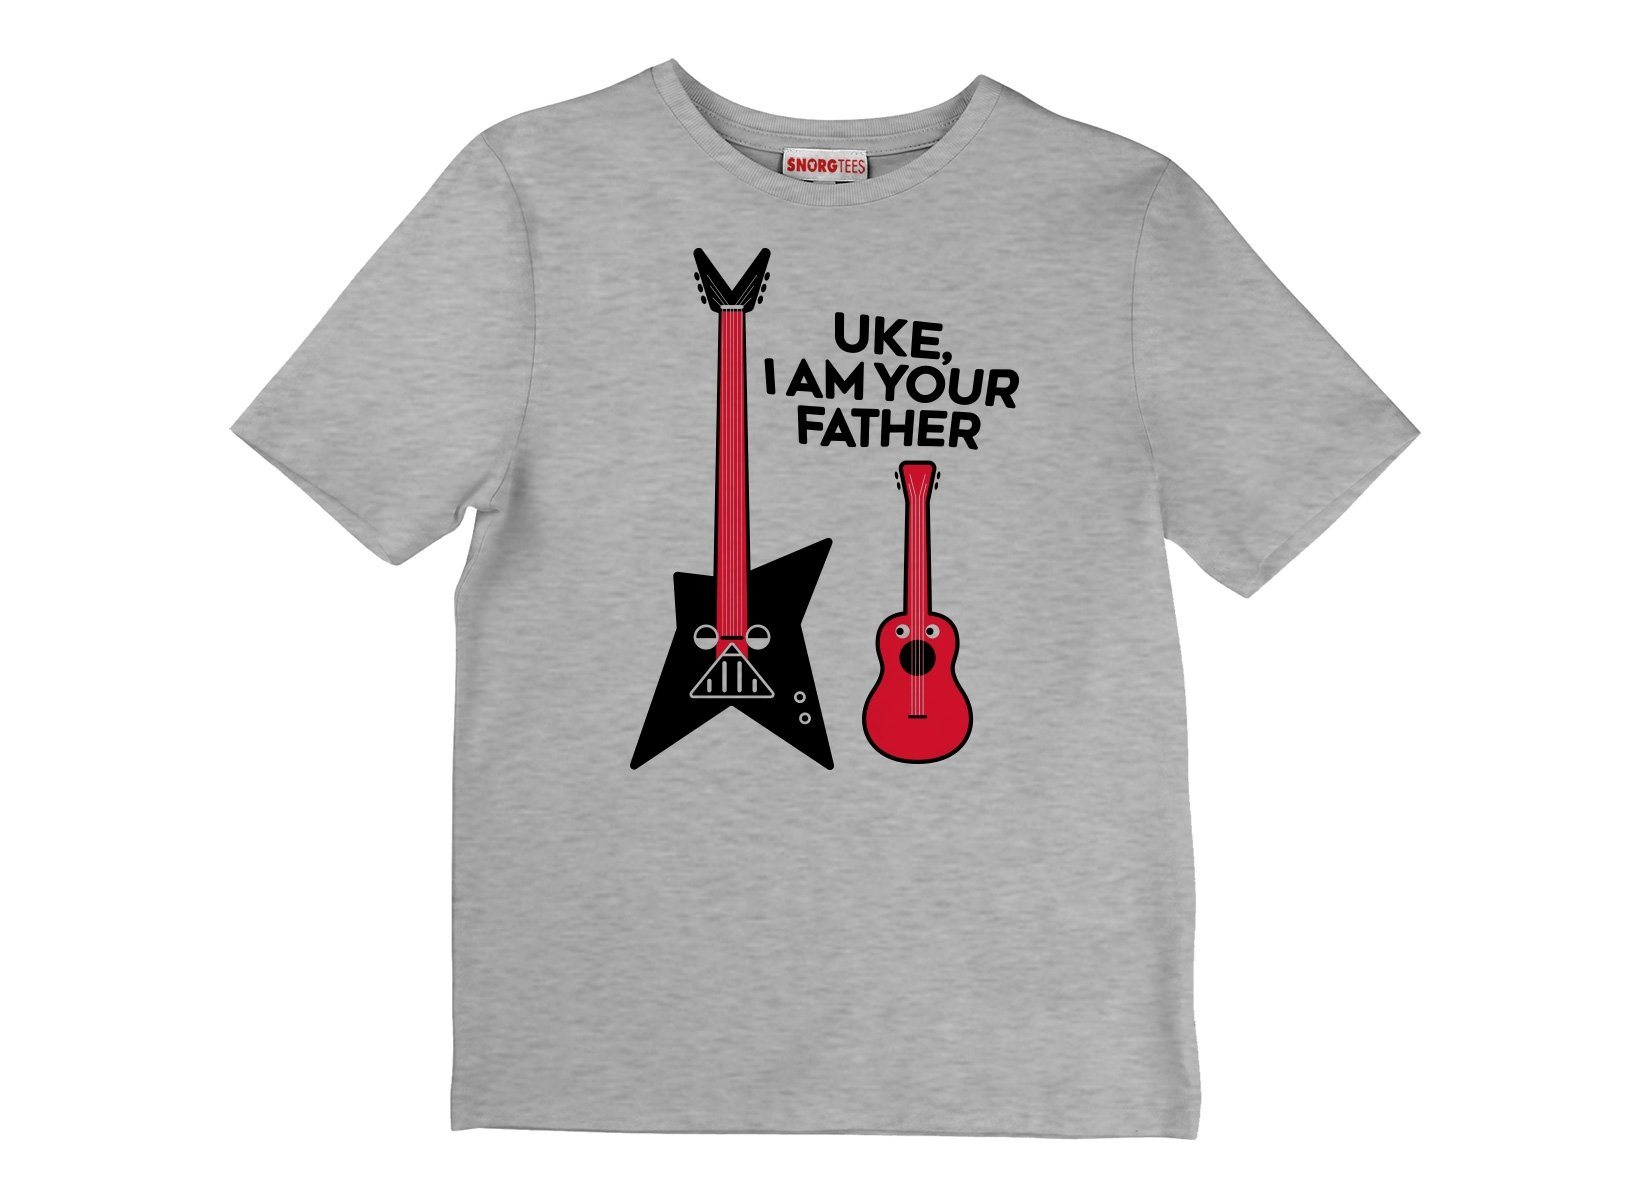 Uke, I Am Your Father on Kids T-Shirt